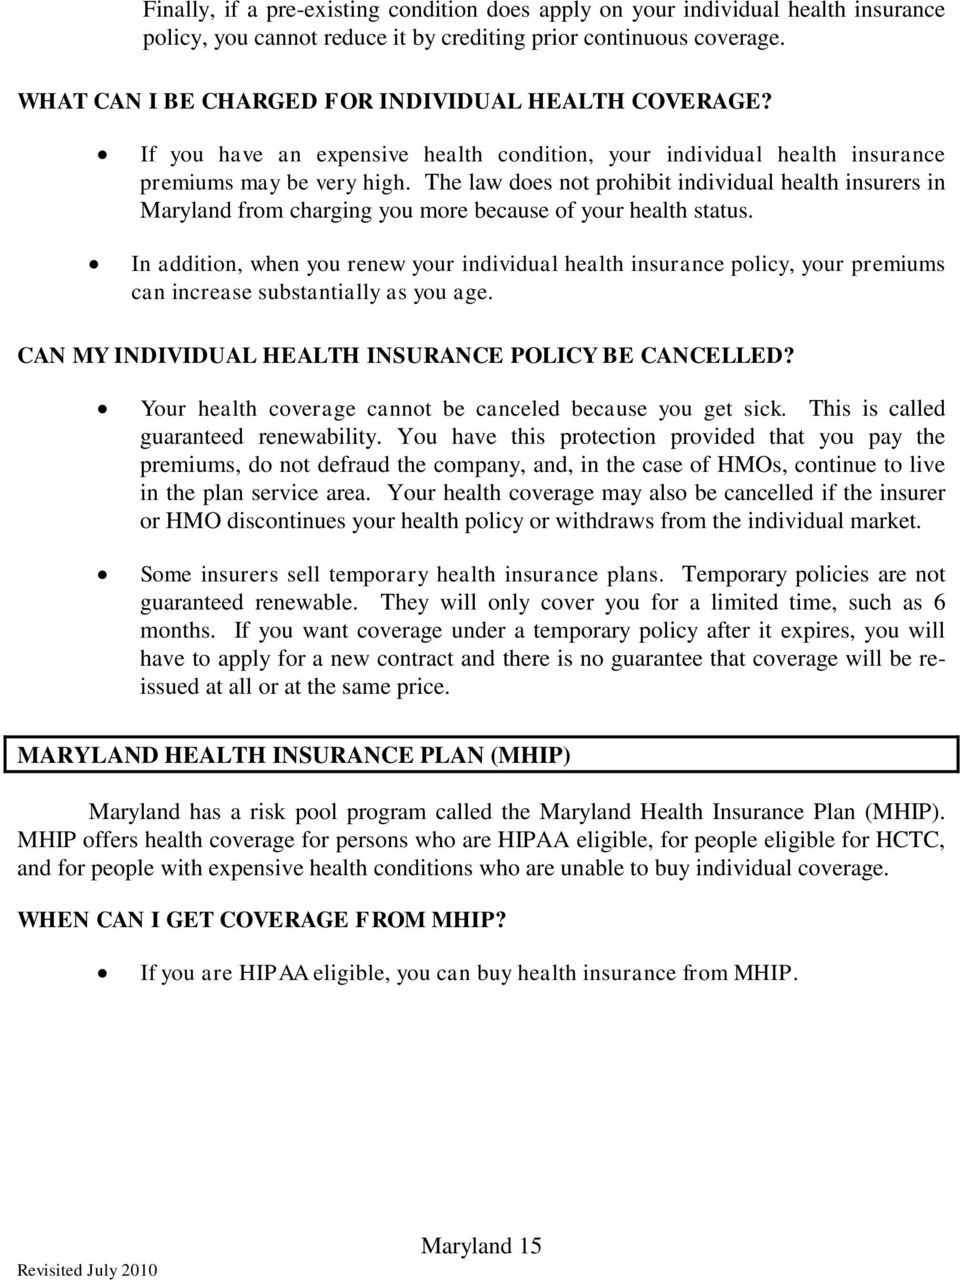 The law does not prohibit individual health insurers in Maryland from charging you more because of your health status.